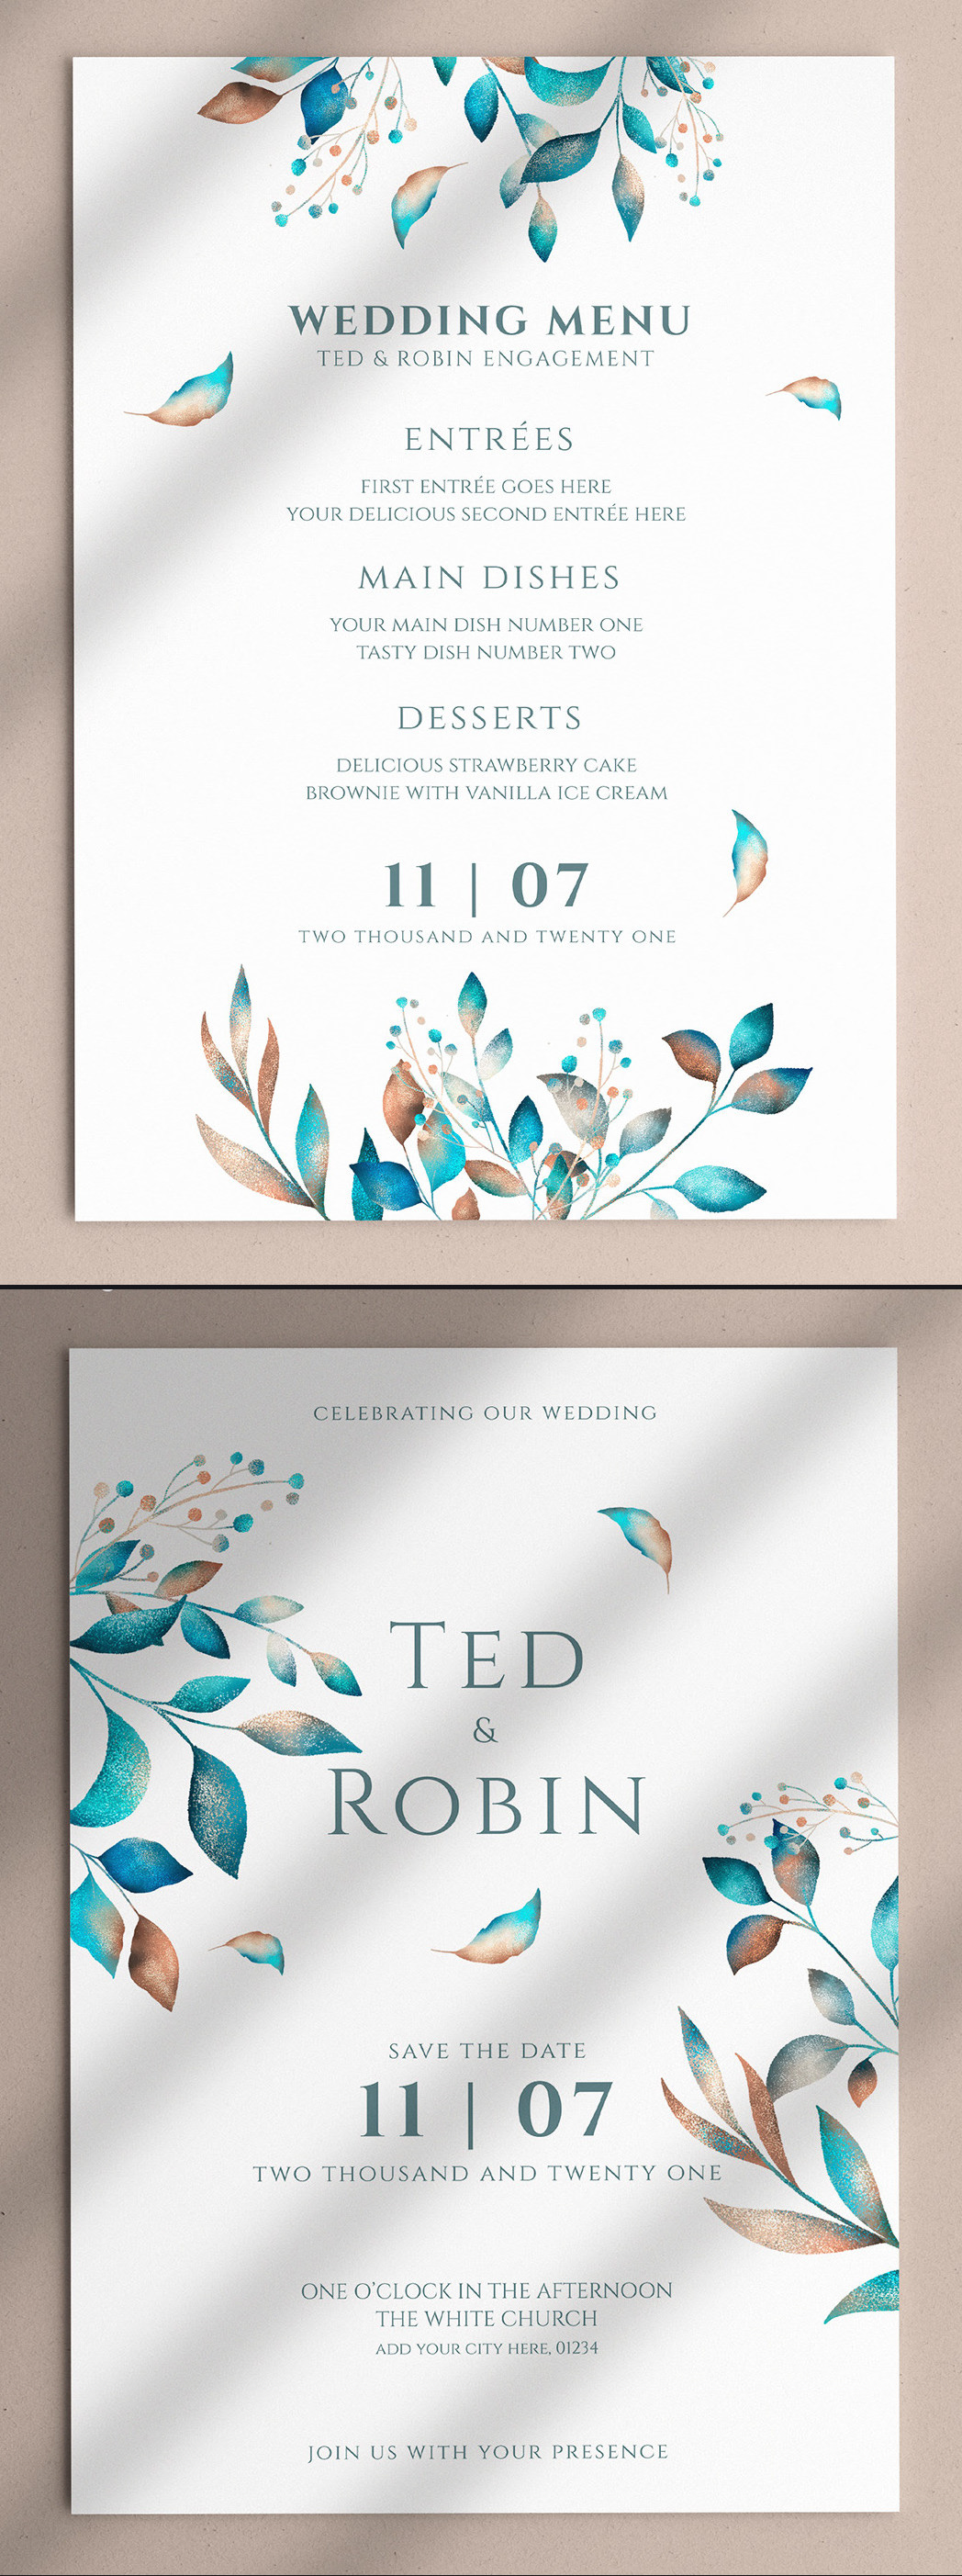 Floral Wedding Invitation & Menu PSD Template - Preview